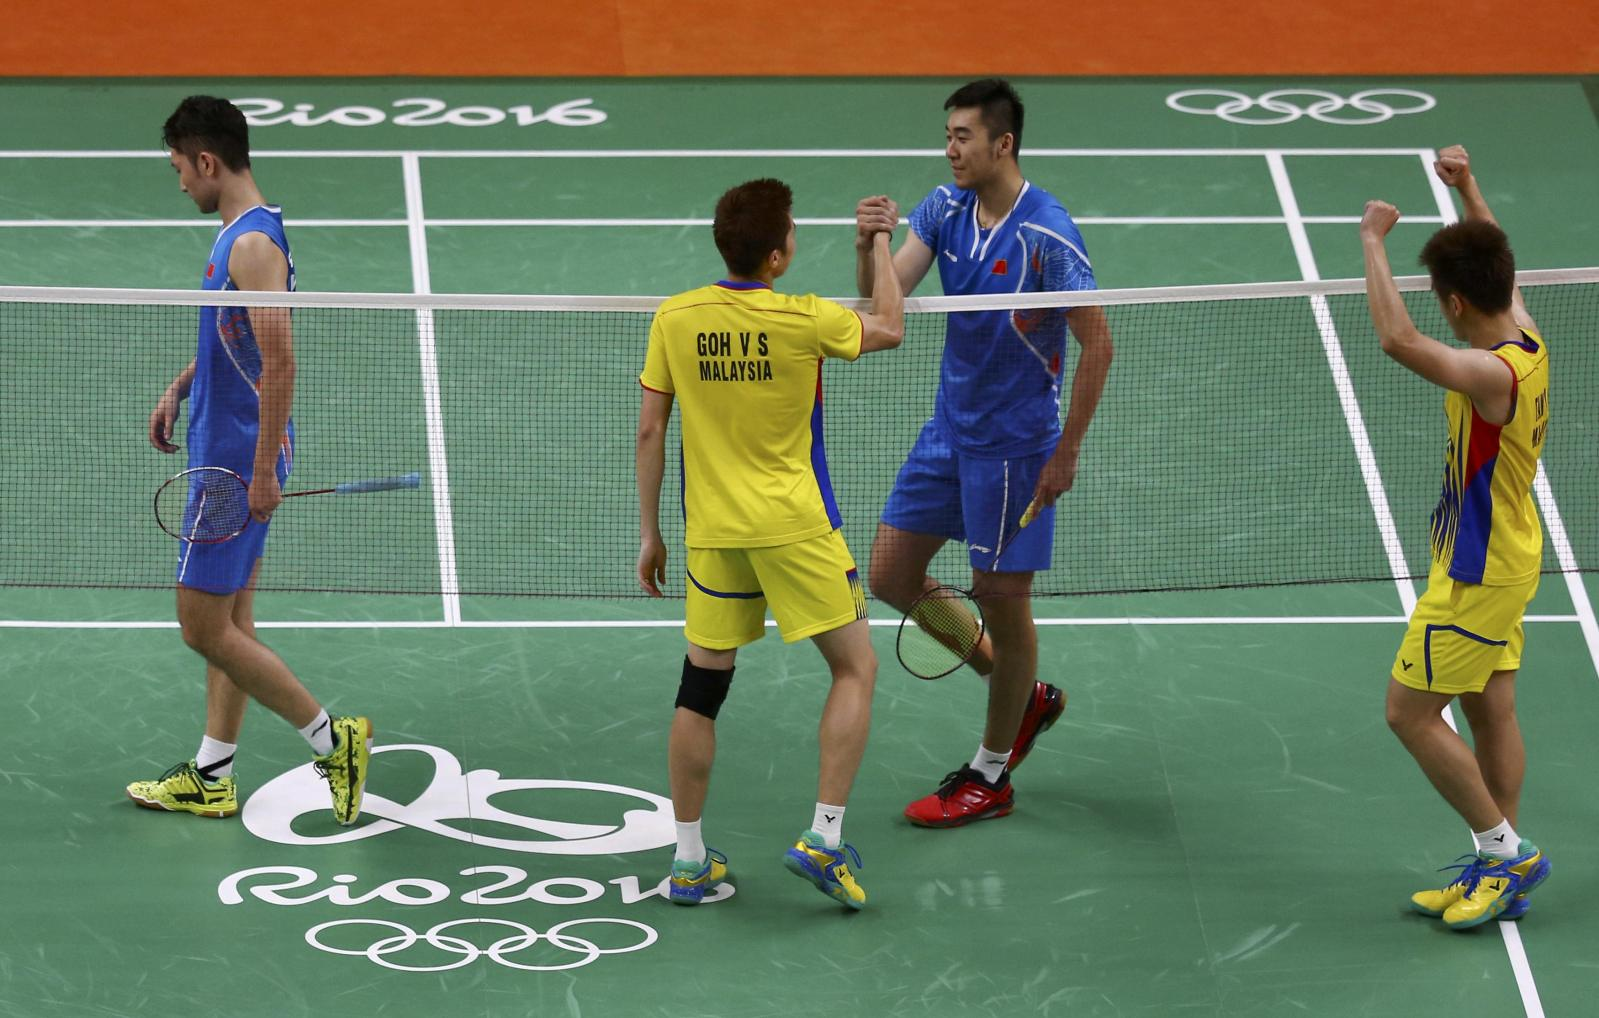 This Video Of Malaysians Celebrating After V Shem Wee Kiongs Win Kotak Makan Duo Sunday Green Image From Reuters